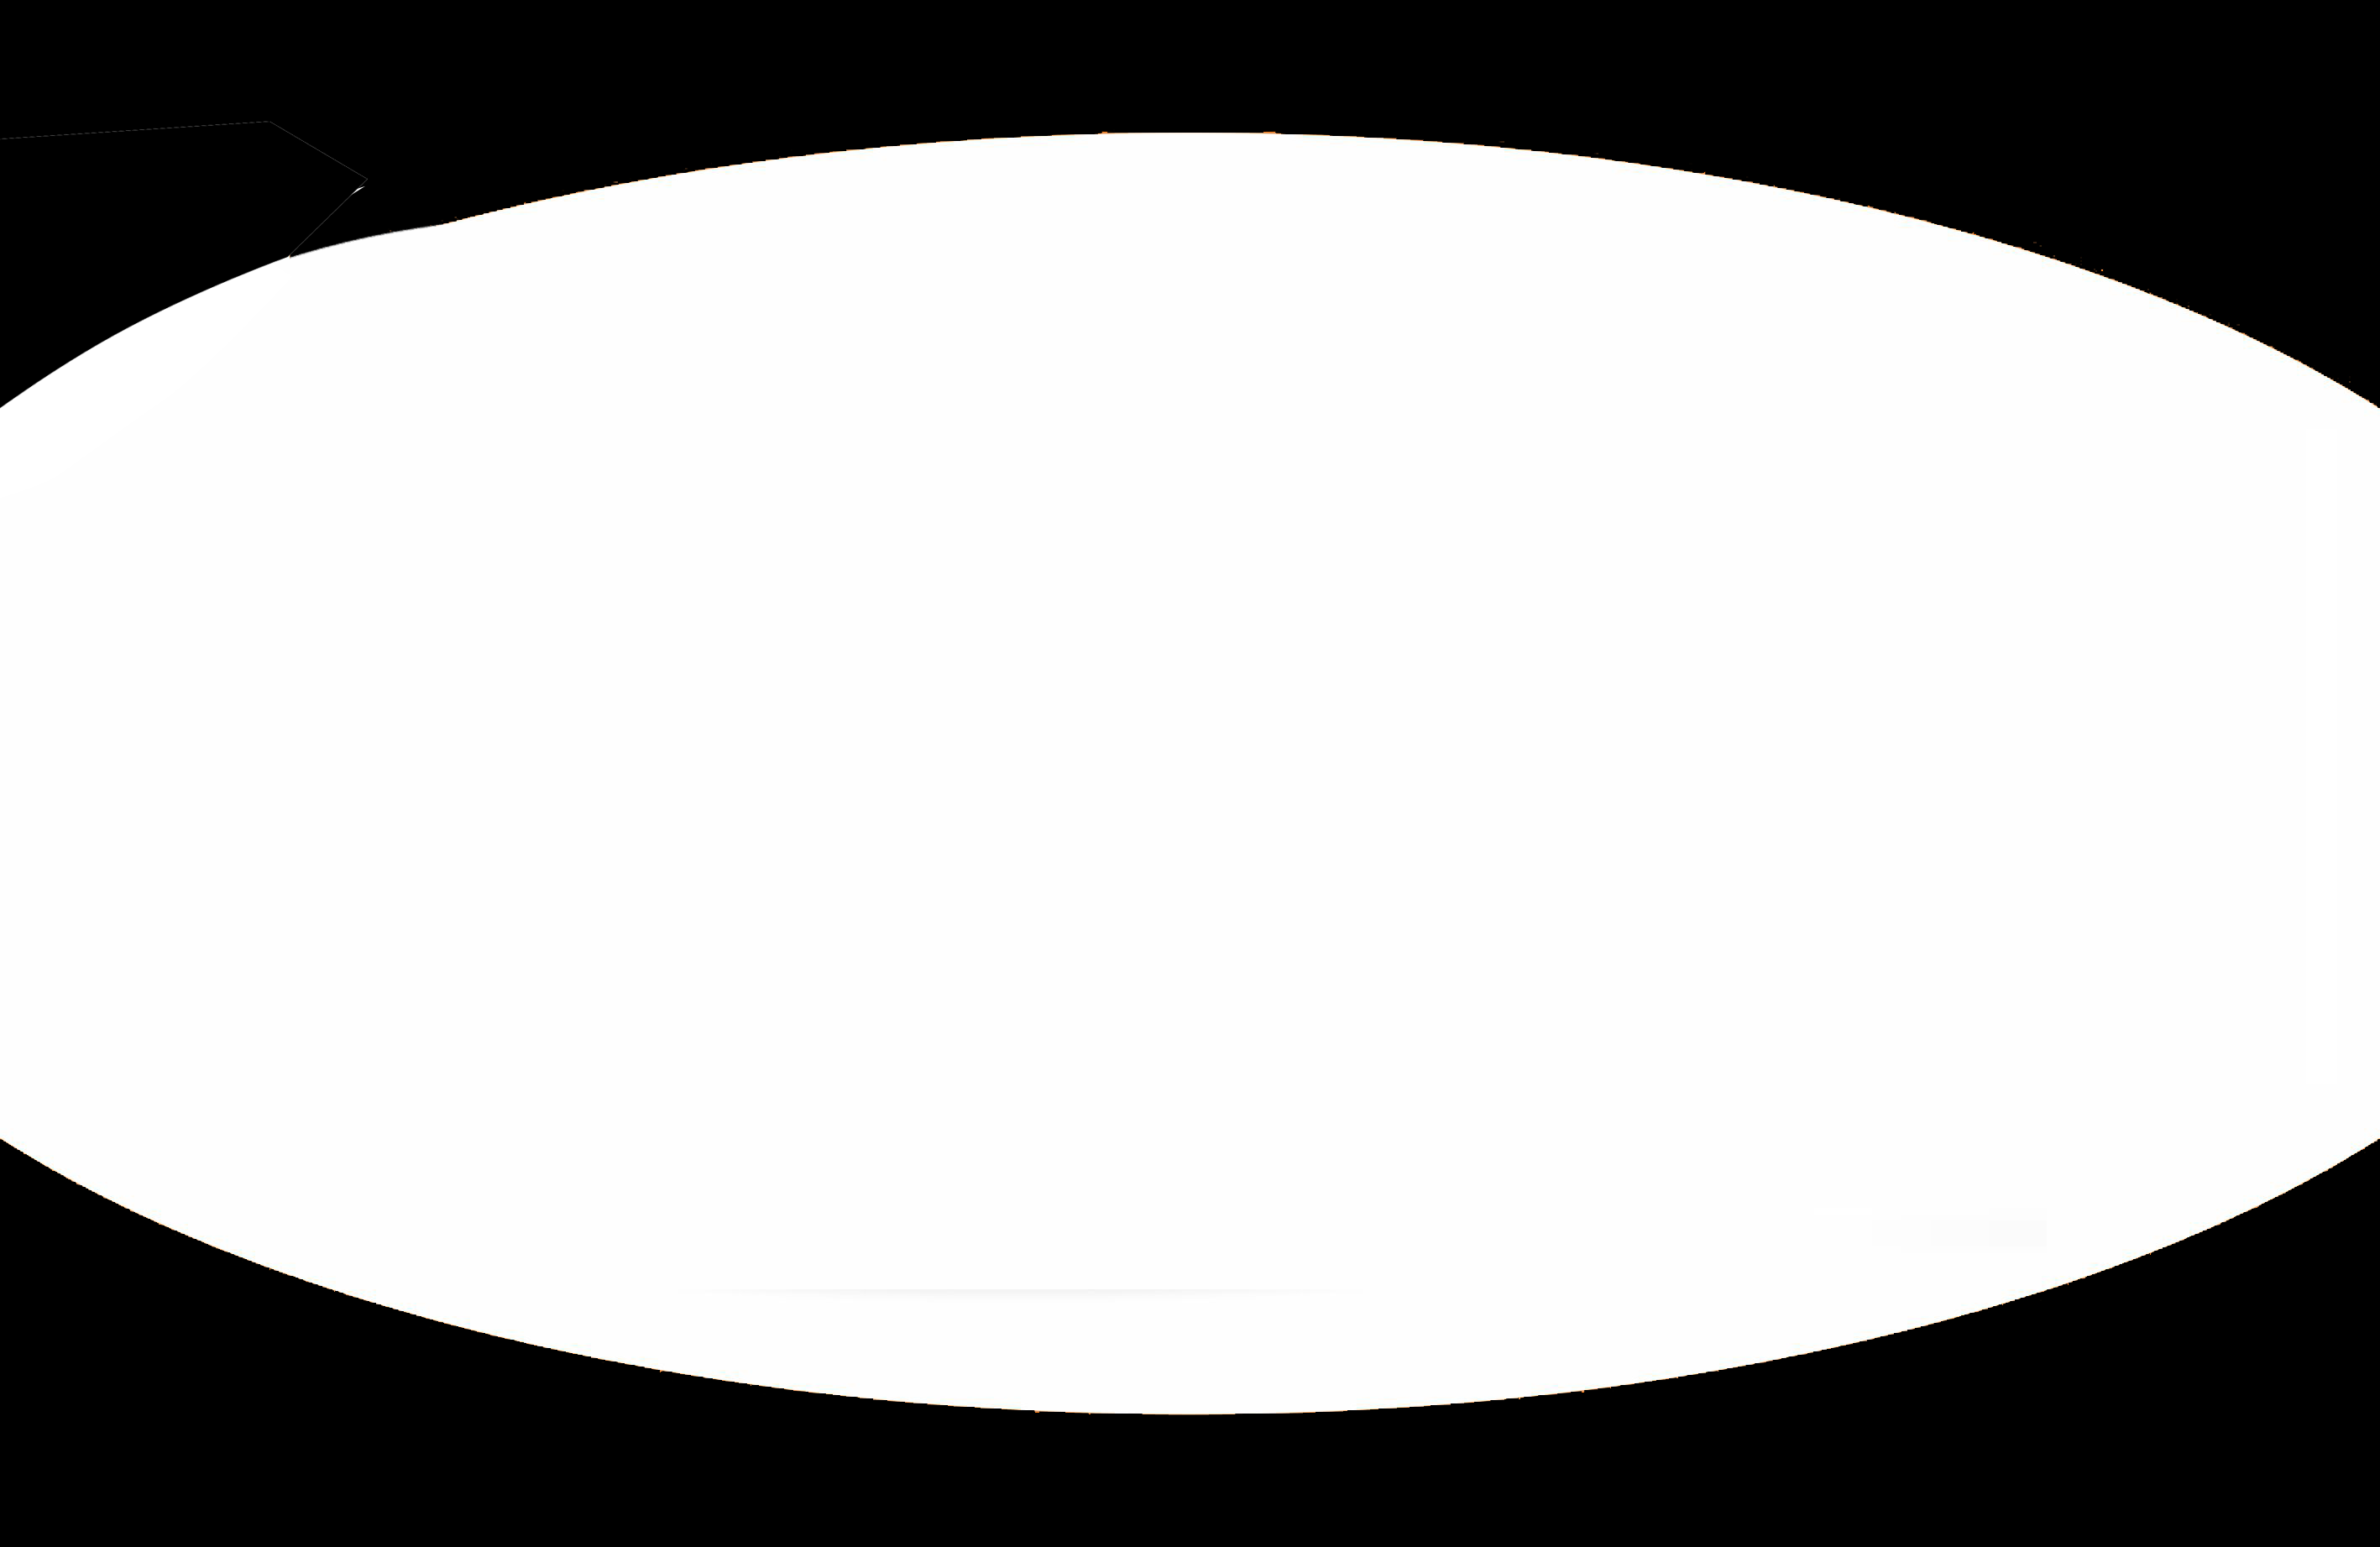 Oval clipart oblong. Css how to give